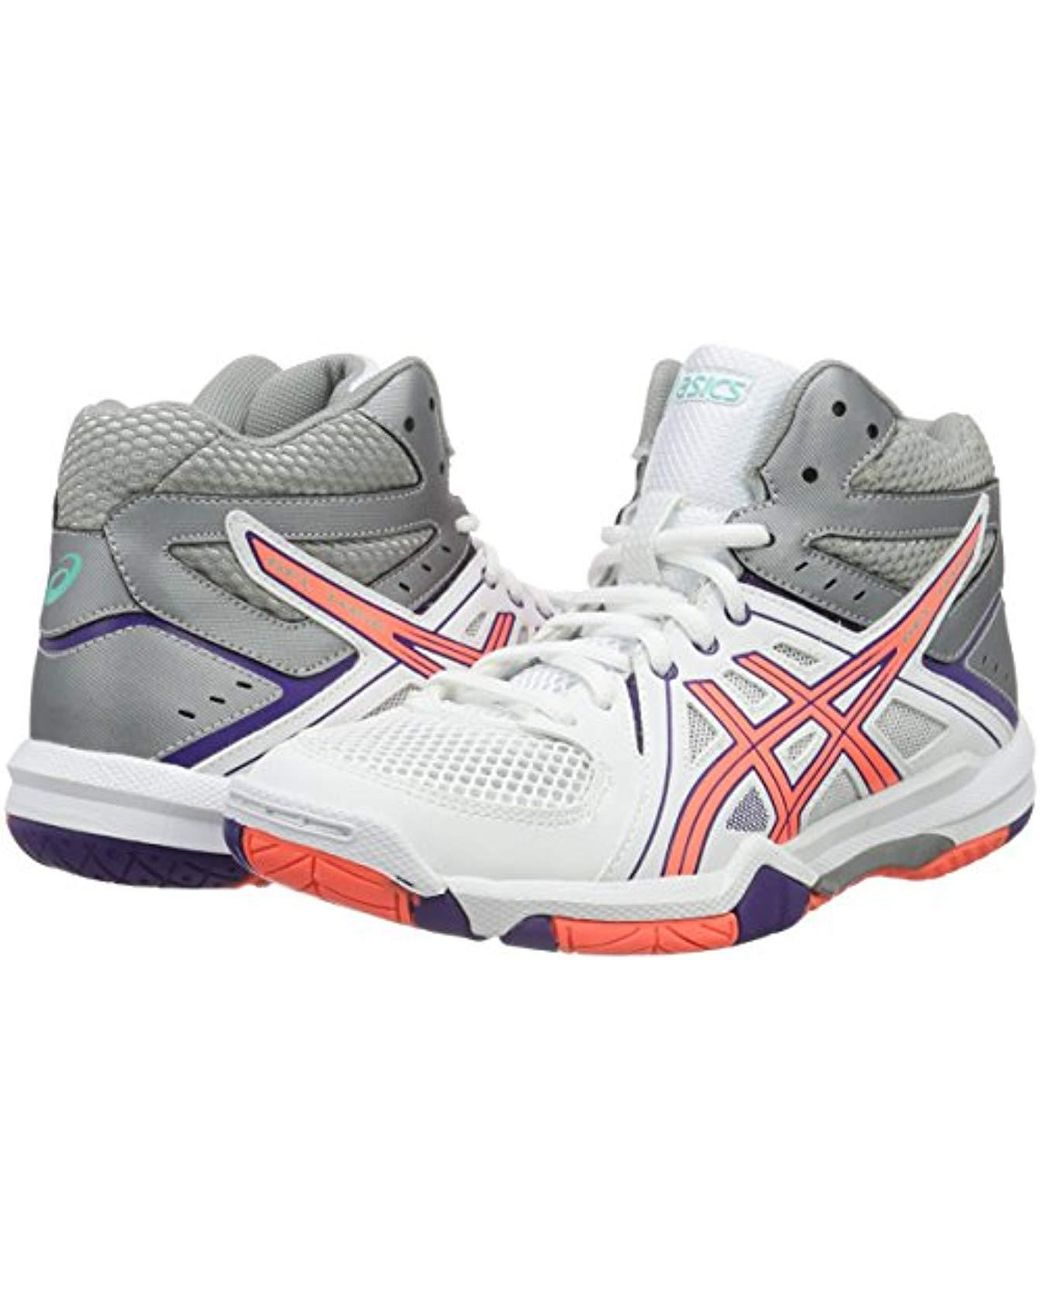 Women's Pink Gel task Mt Volleyball Shoes